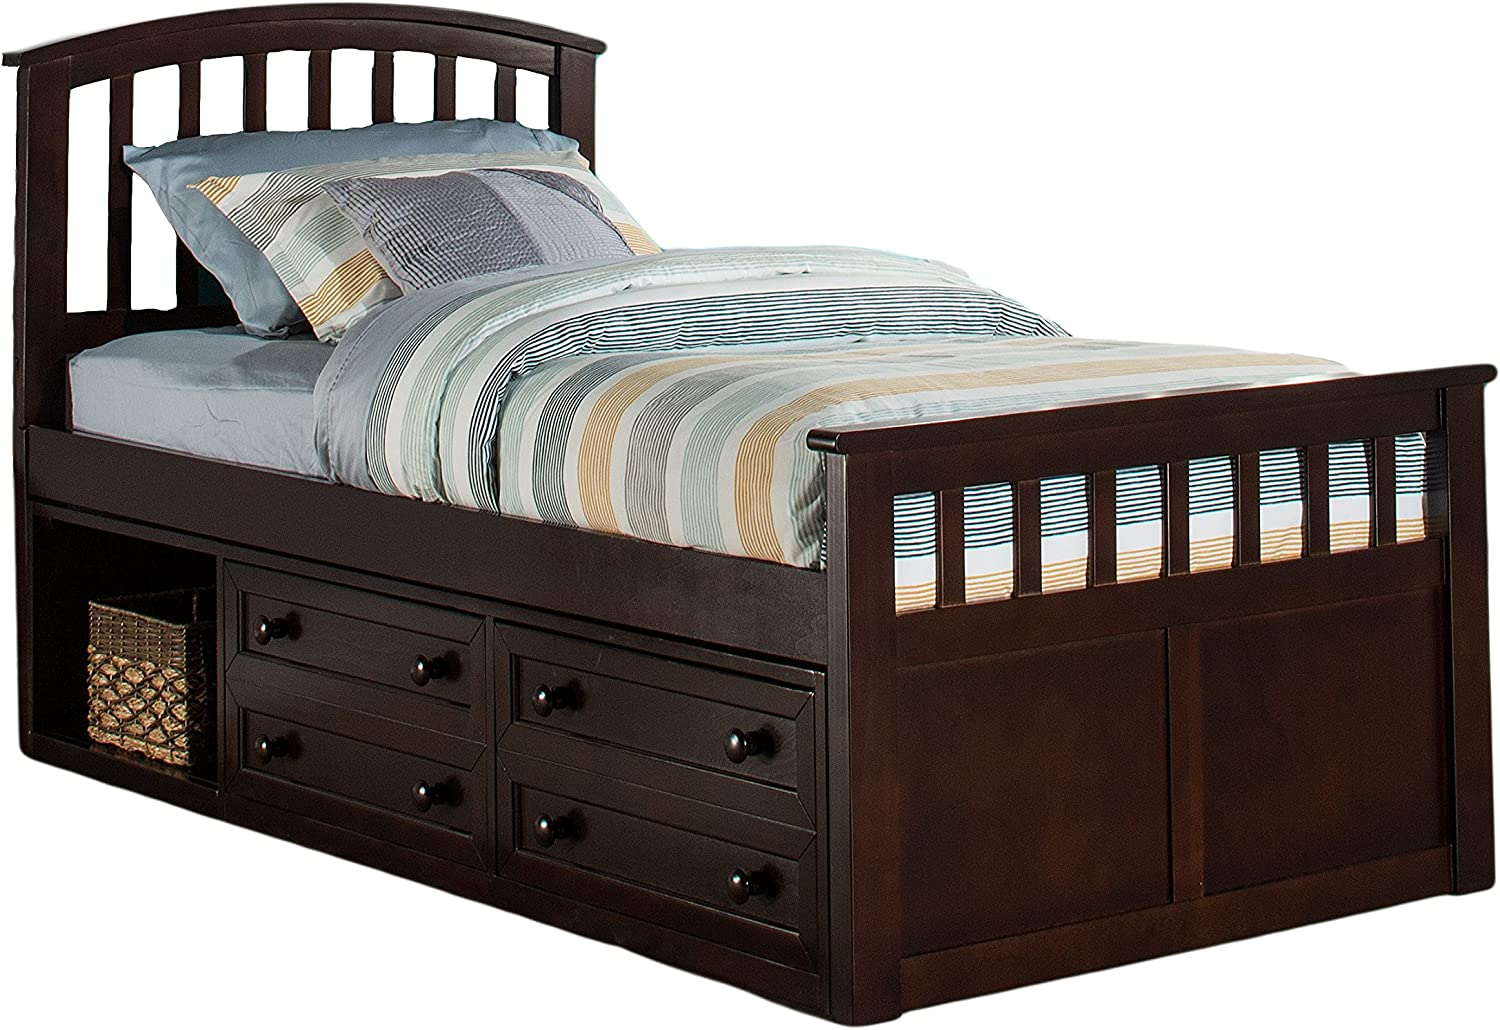 Hillsdale Furniture Hillsdale Charlie Captains Storage Bed, Twin, Chocolate